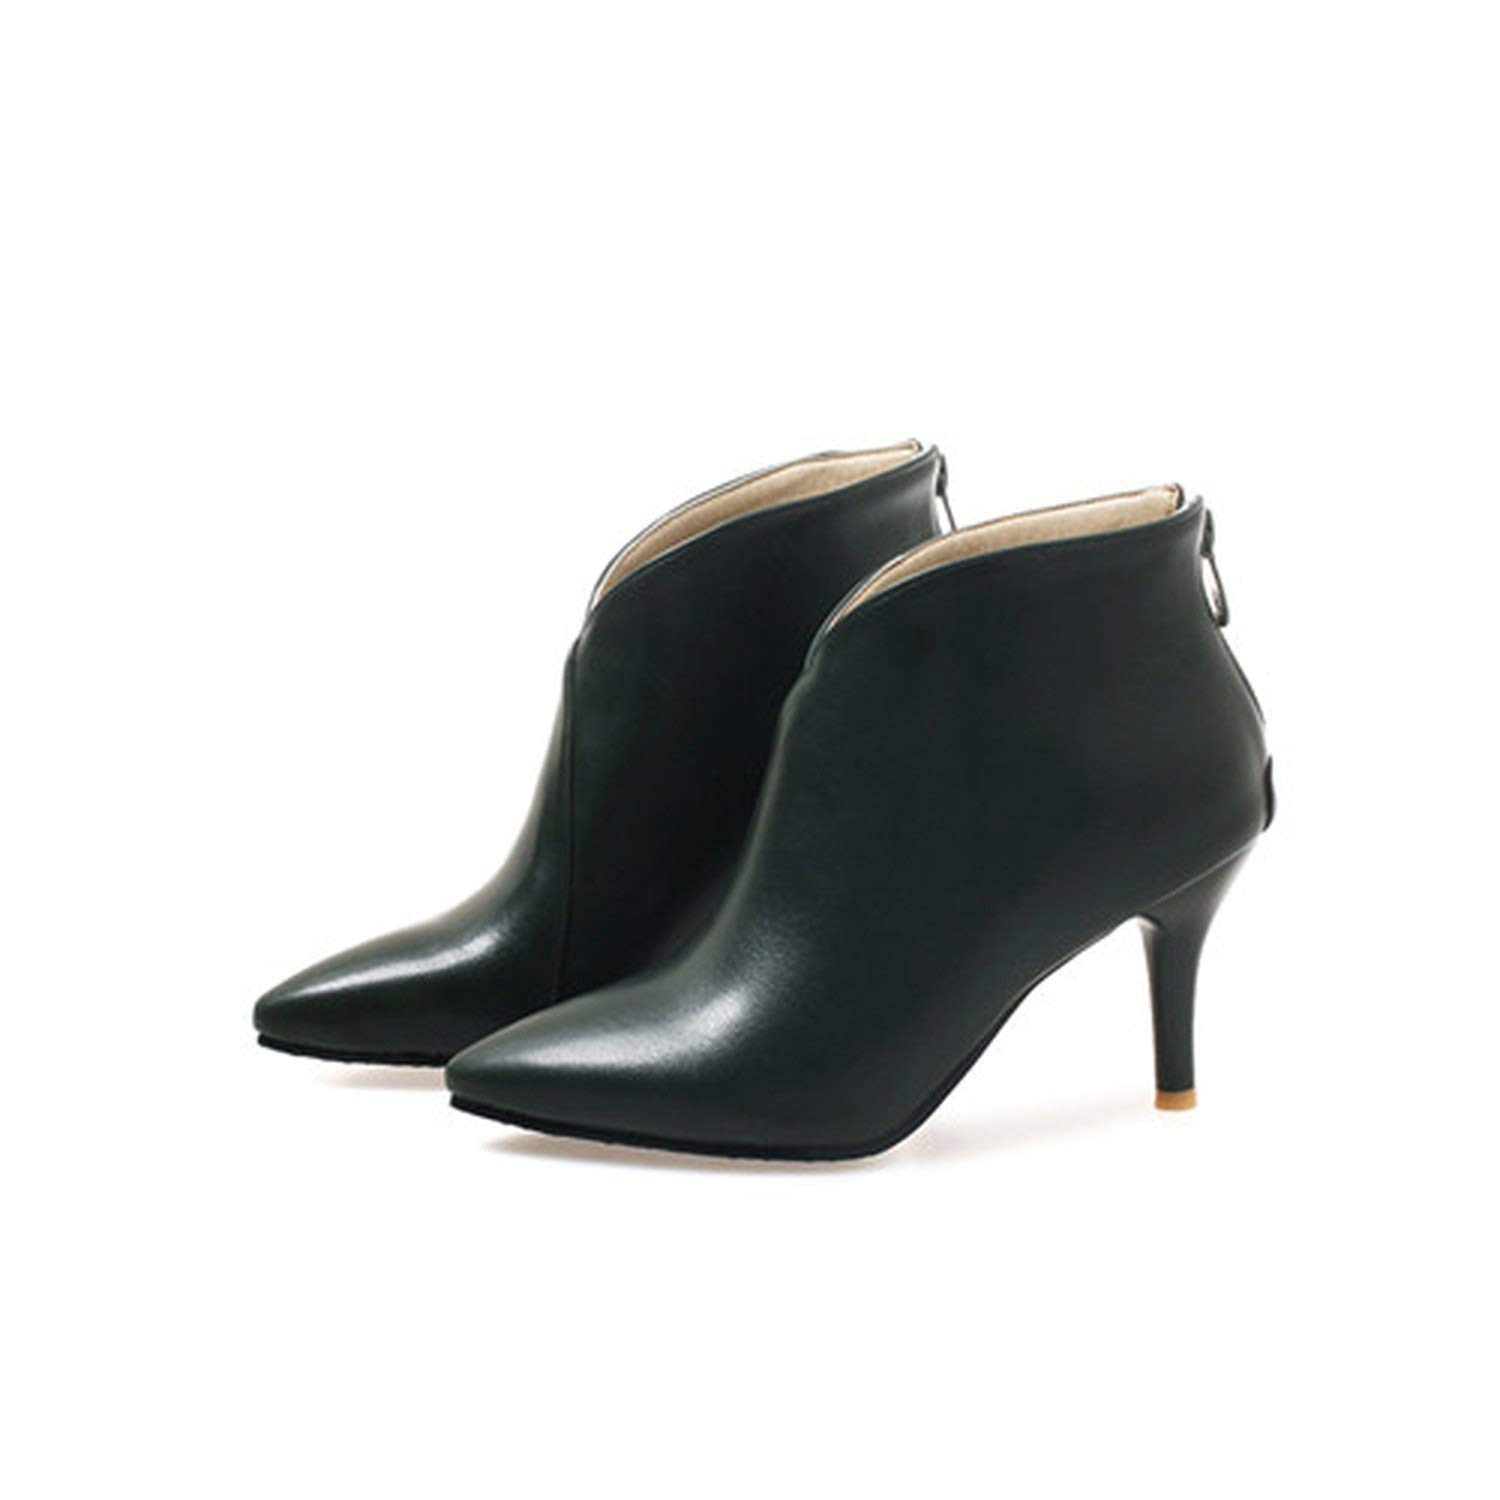 3 Large Size Women Boots Pointed Toe High Heels Women's shoes Sexy Autumn Winter Ankle Boots